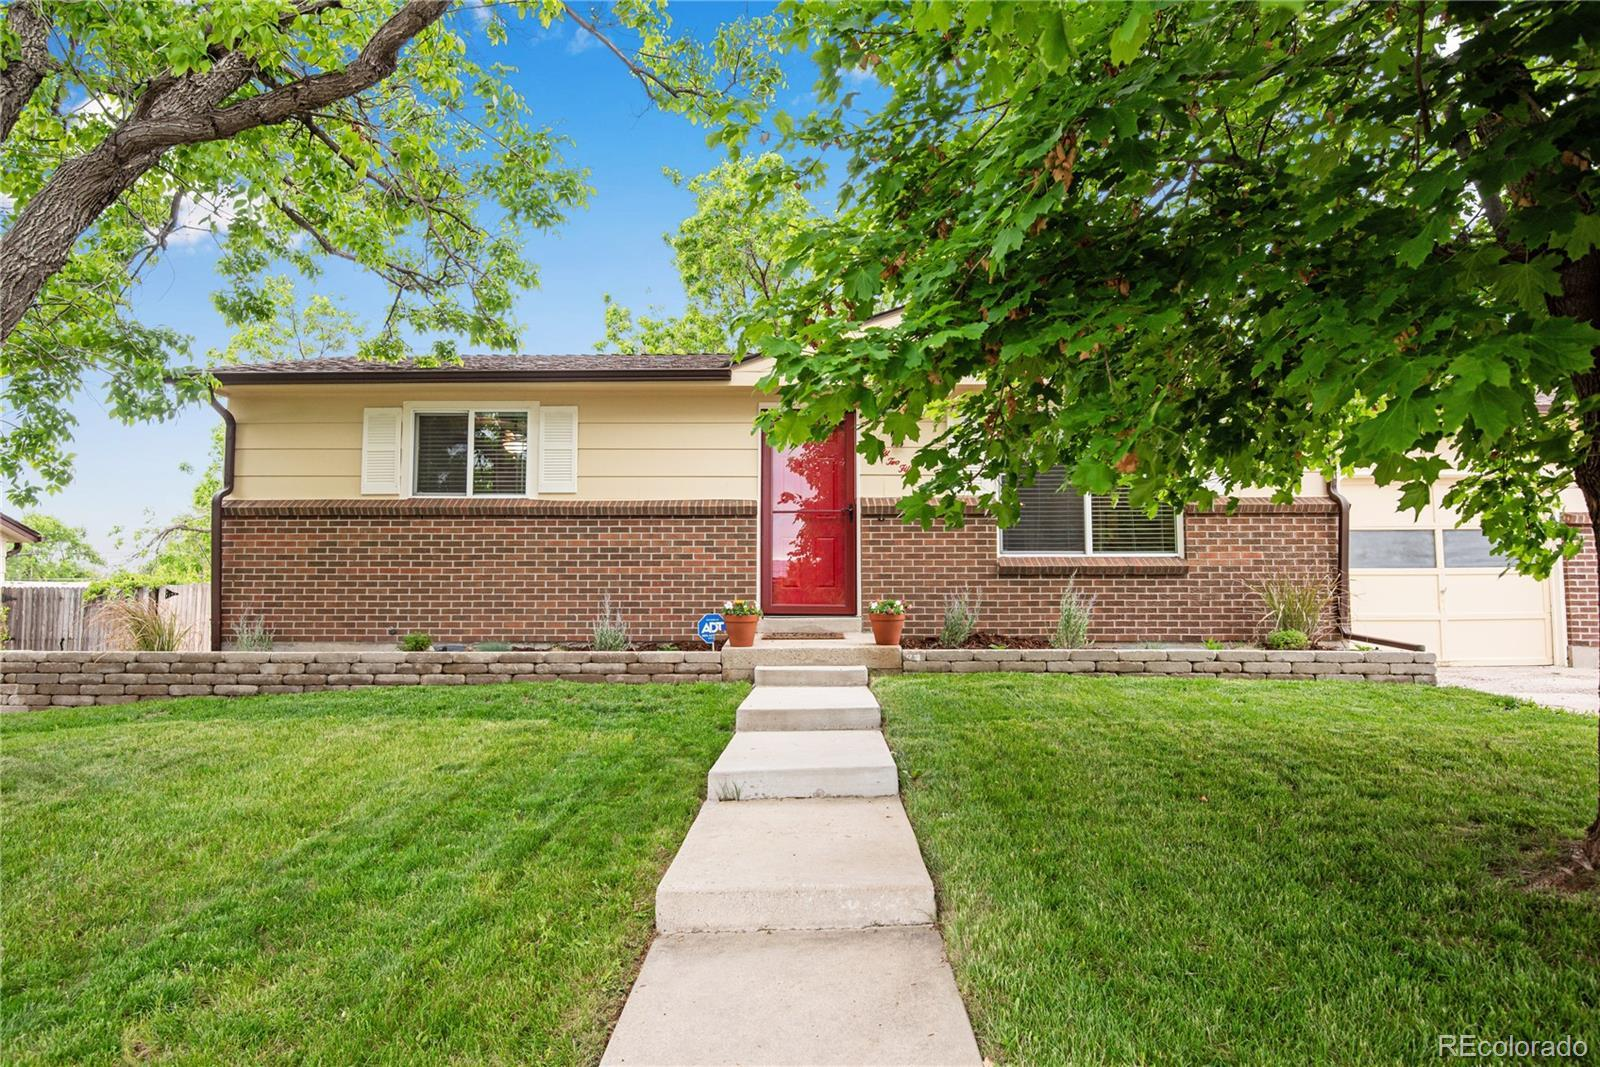 6250 W 77th Place, Arvada, CO 80003 - #: 4987237